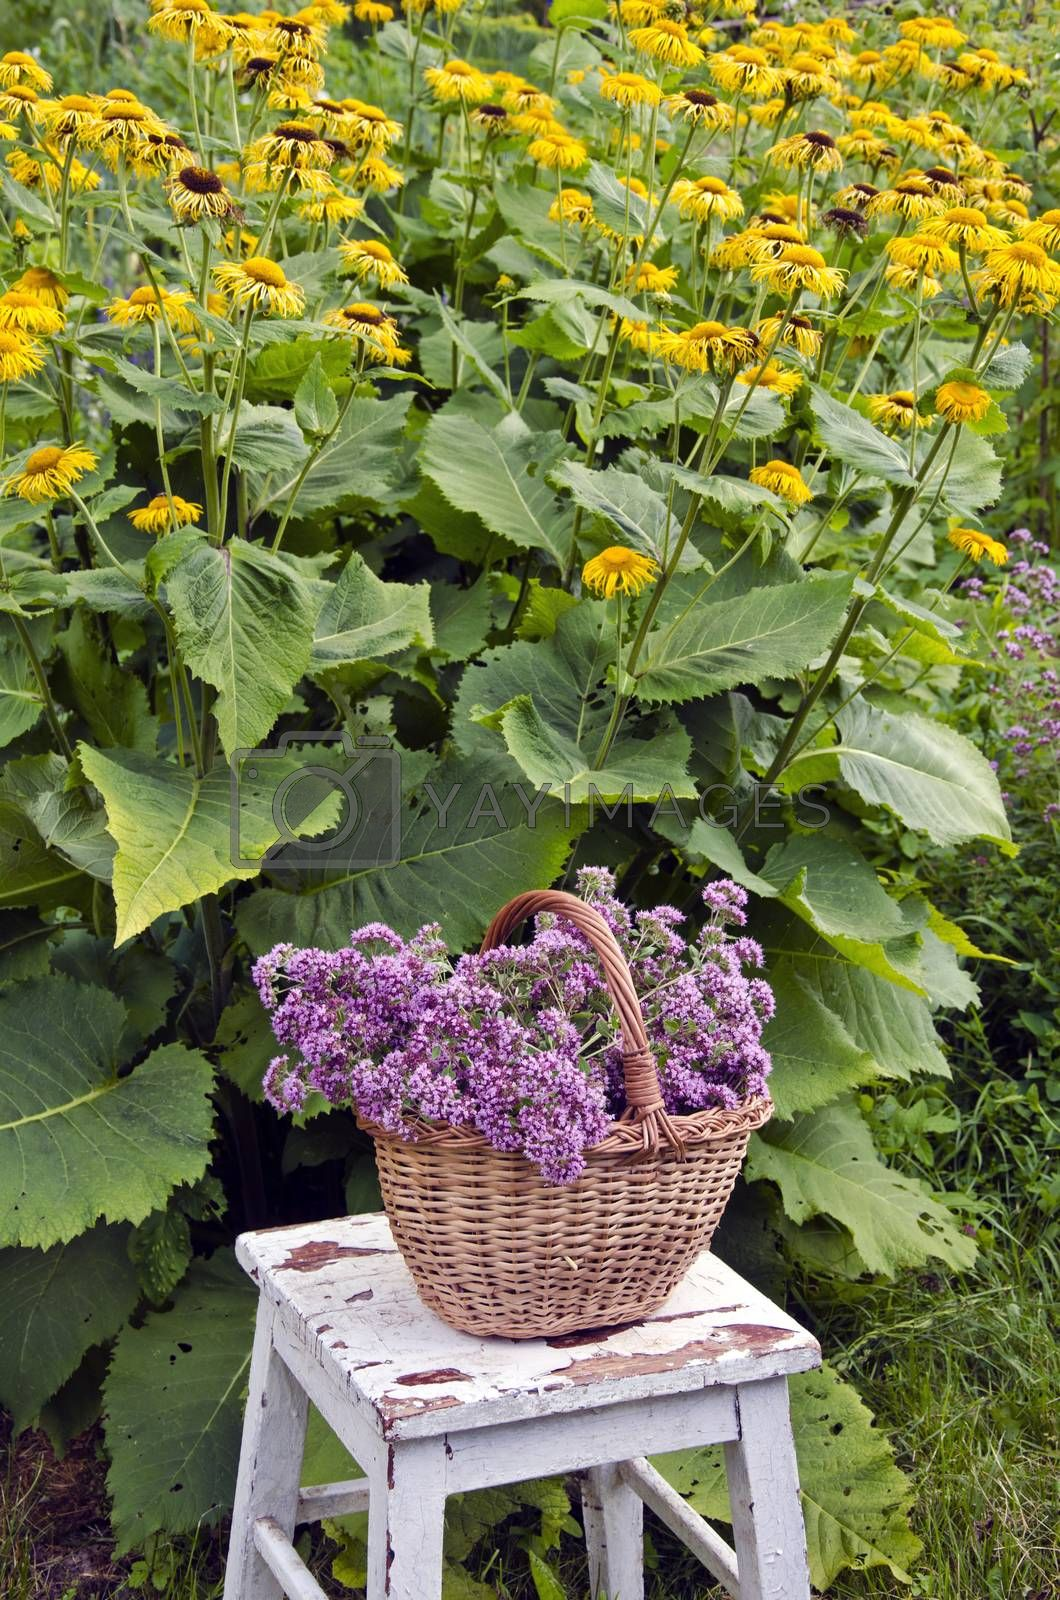 Royalty free image of Freshly picked oregano in a wicker basket in the garden by alis_photo